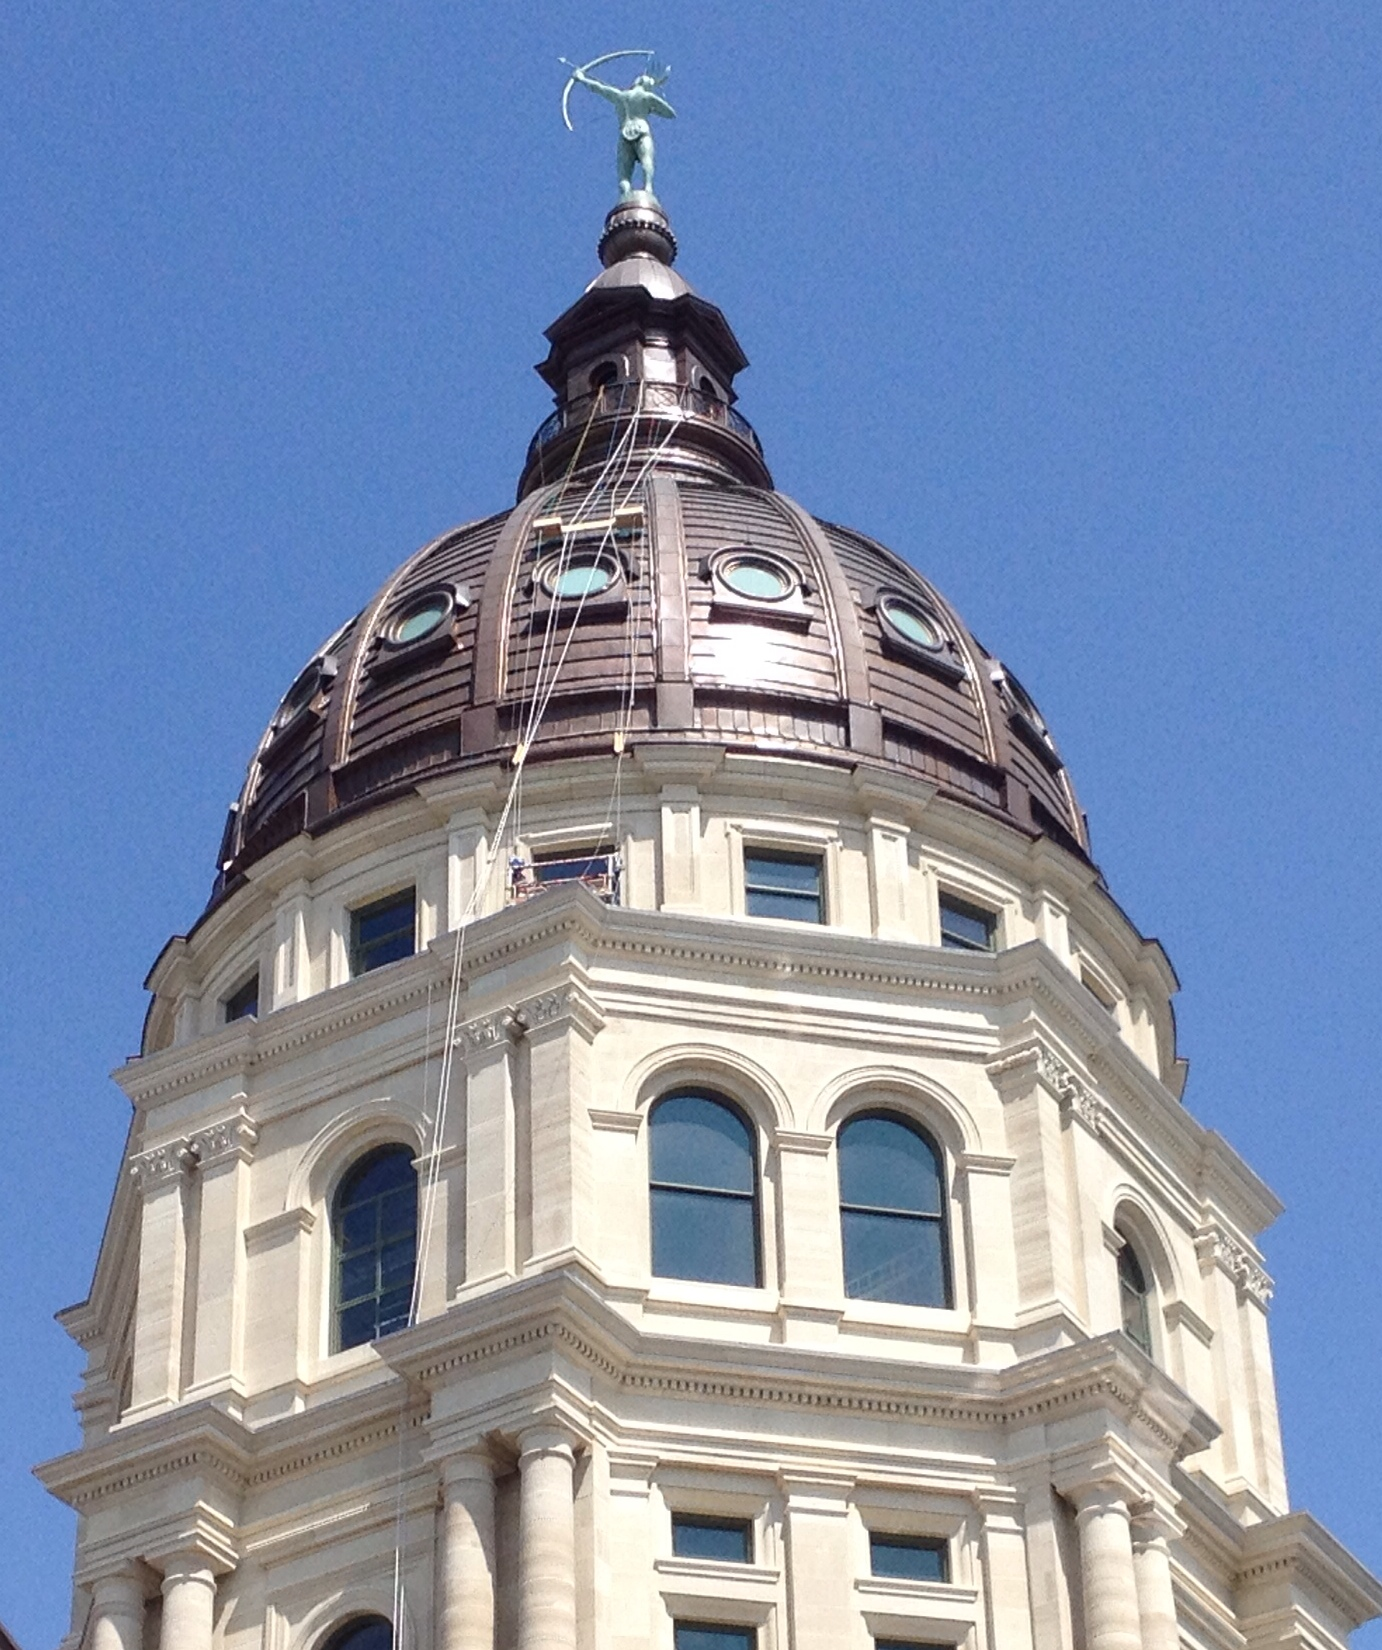 Kansas Statehouse dome (Photo by J. Schafer)